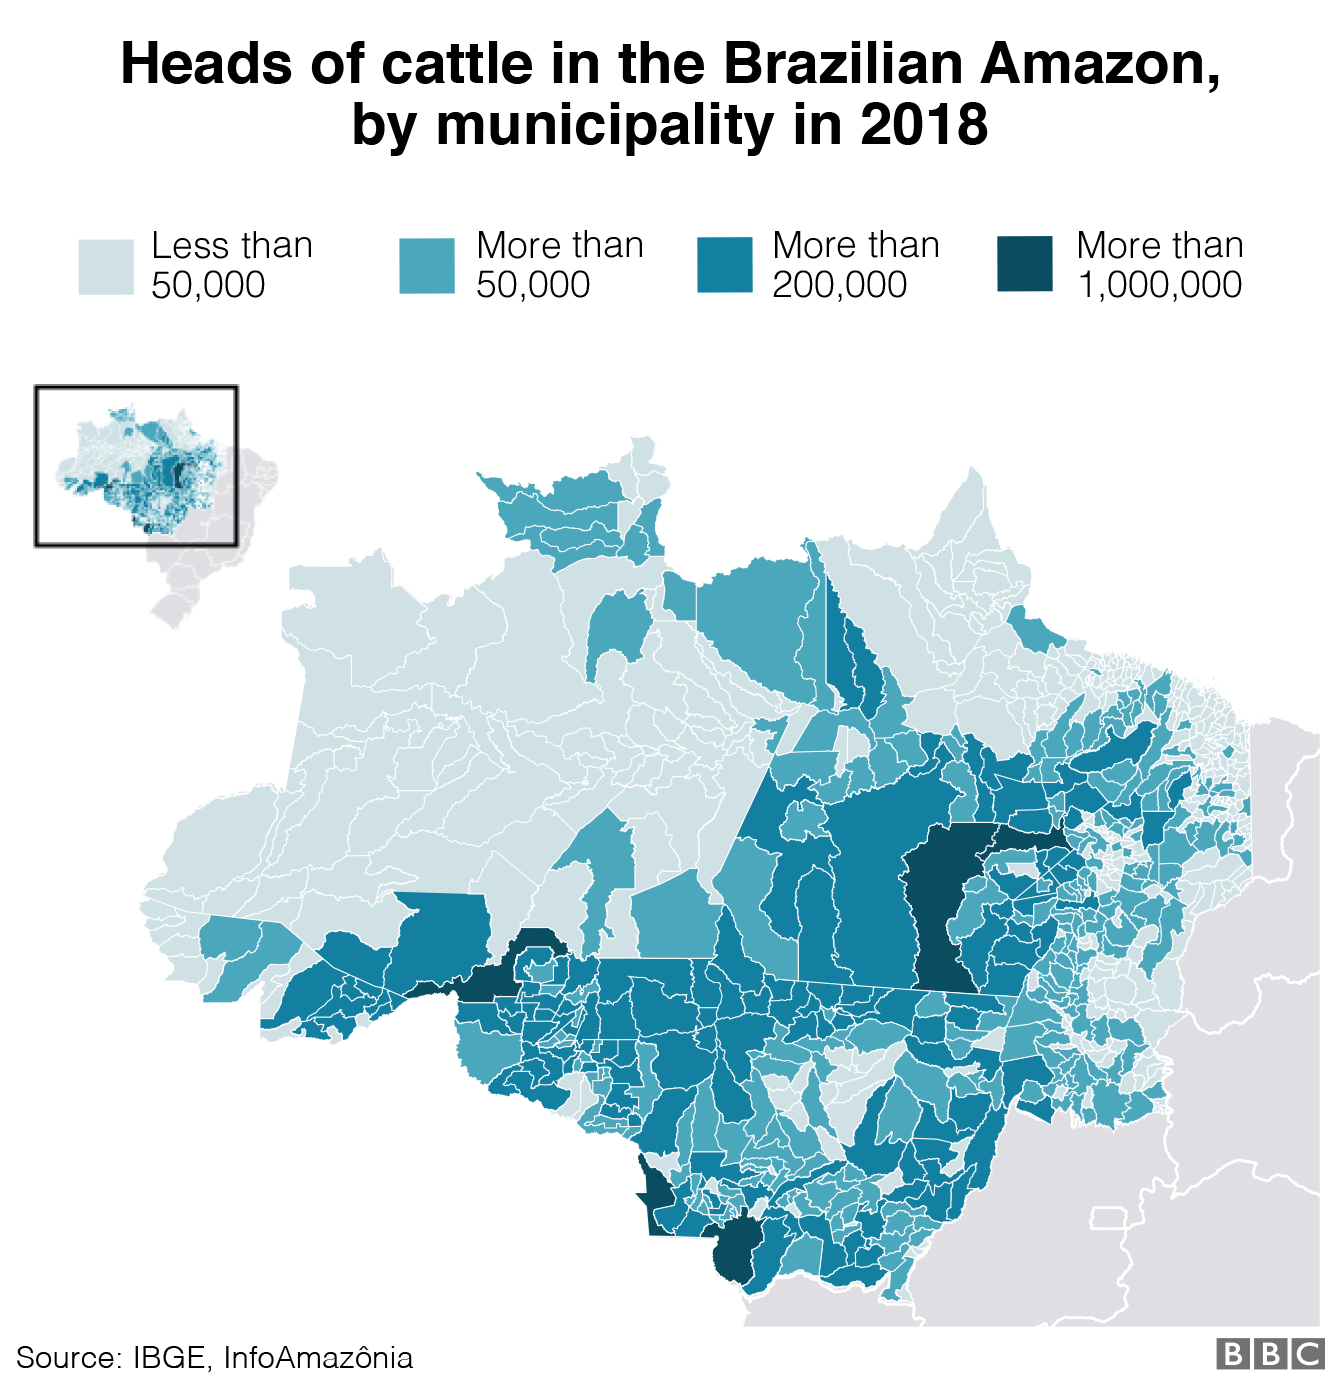 Graphic showing numbers for heads of cattle in Brazil